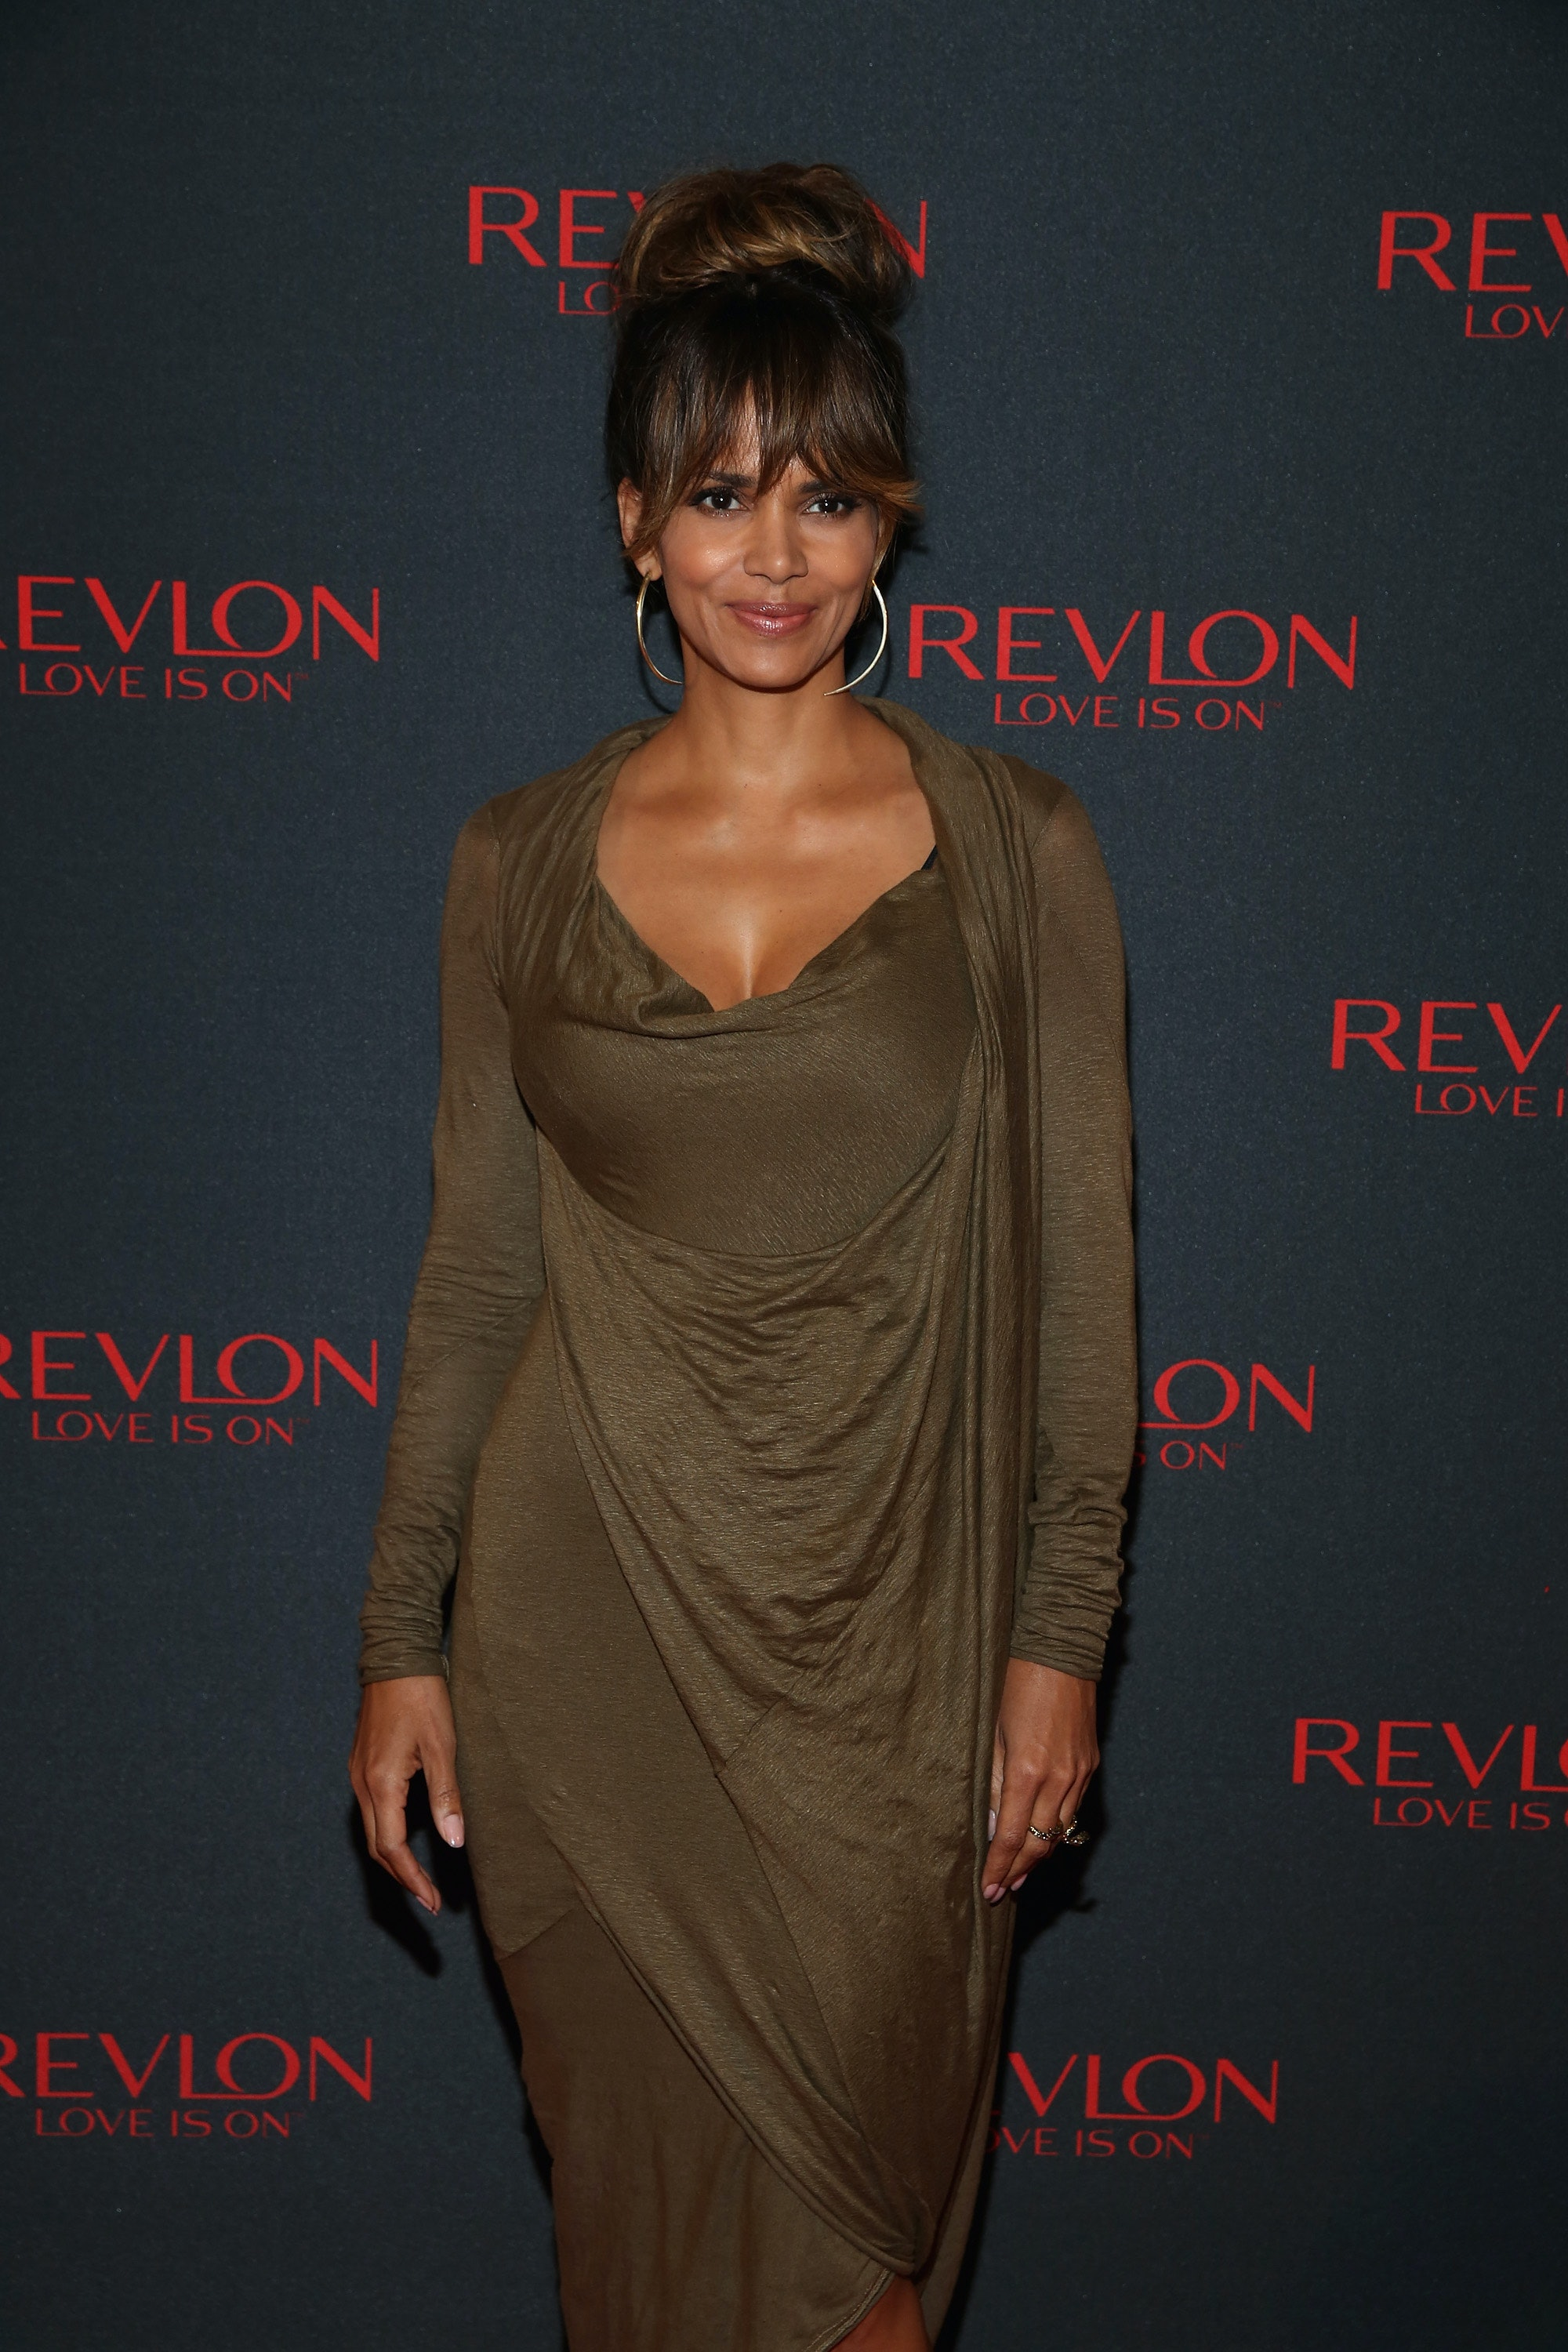 Halle Berry's New Haircut Is Her Coolest Look Since That Pixie 'Do ...